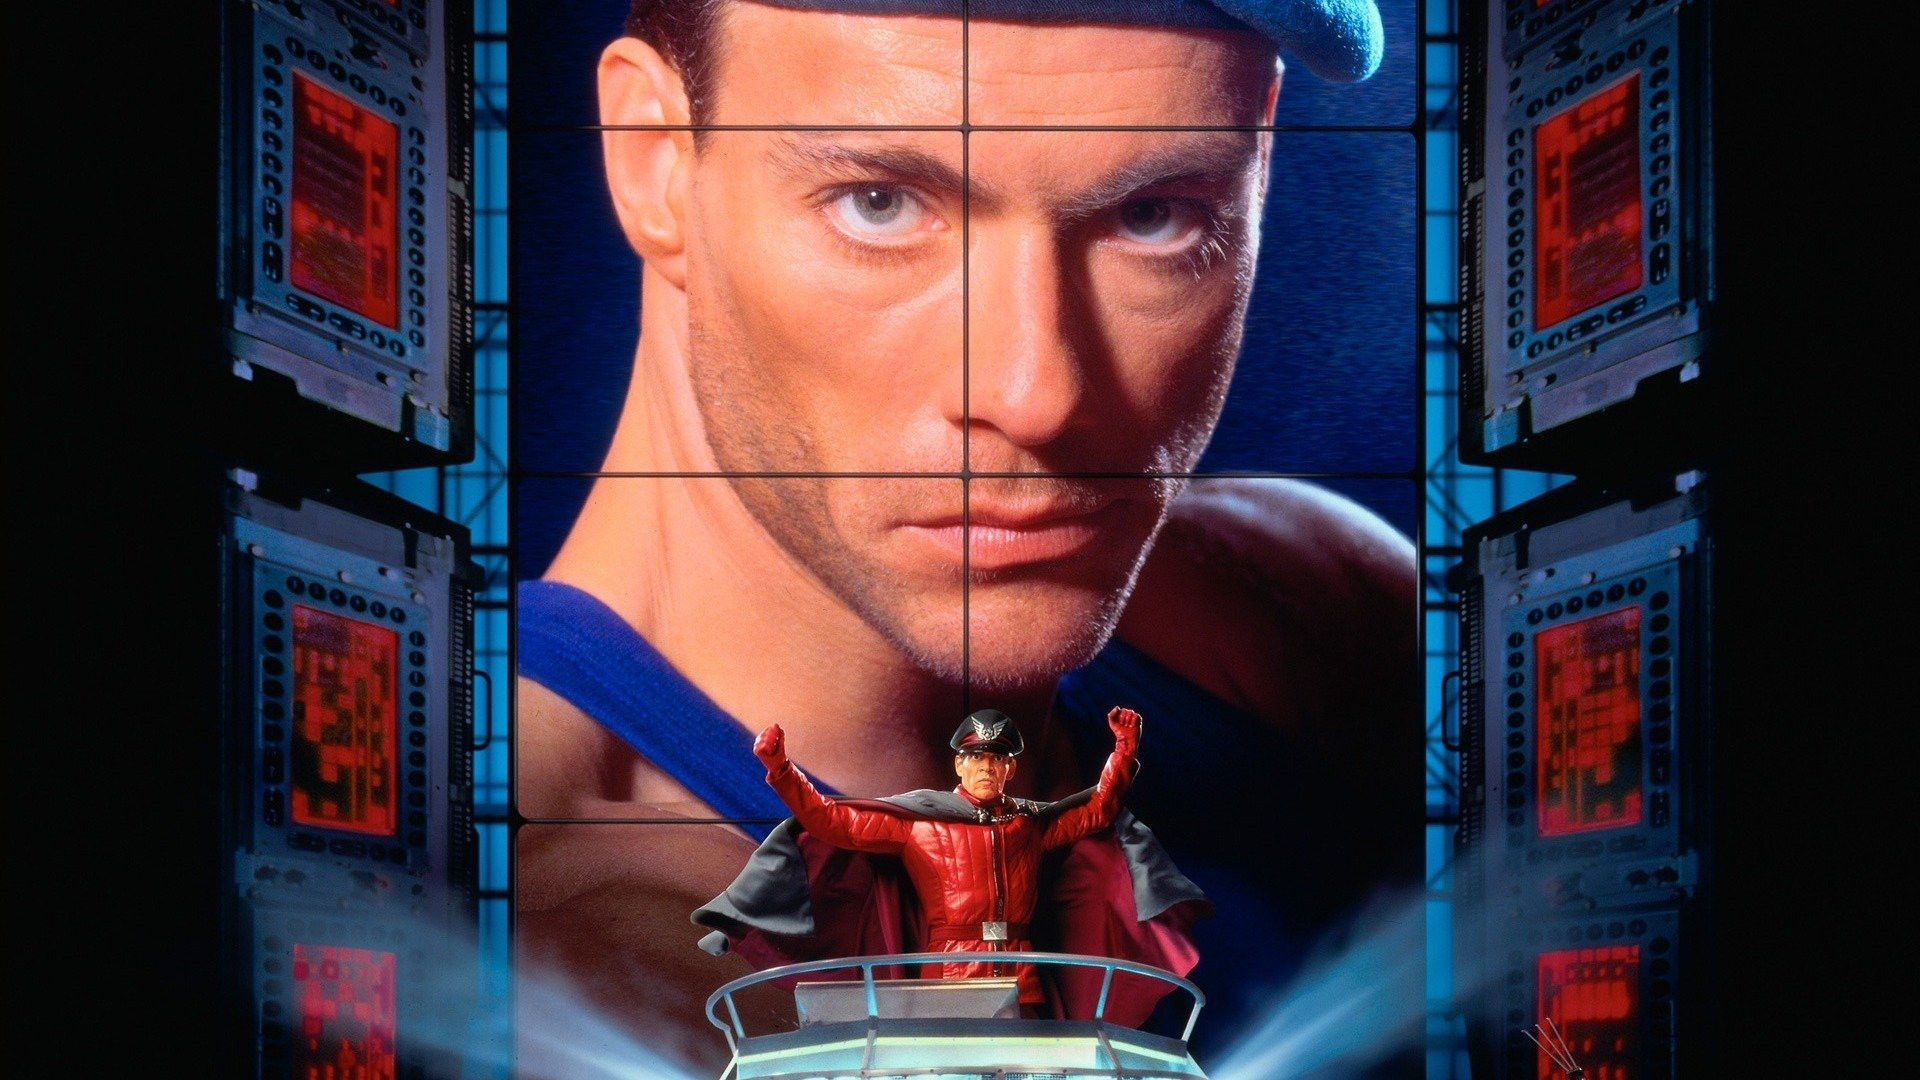 street fighter 1994 movie poster